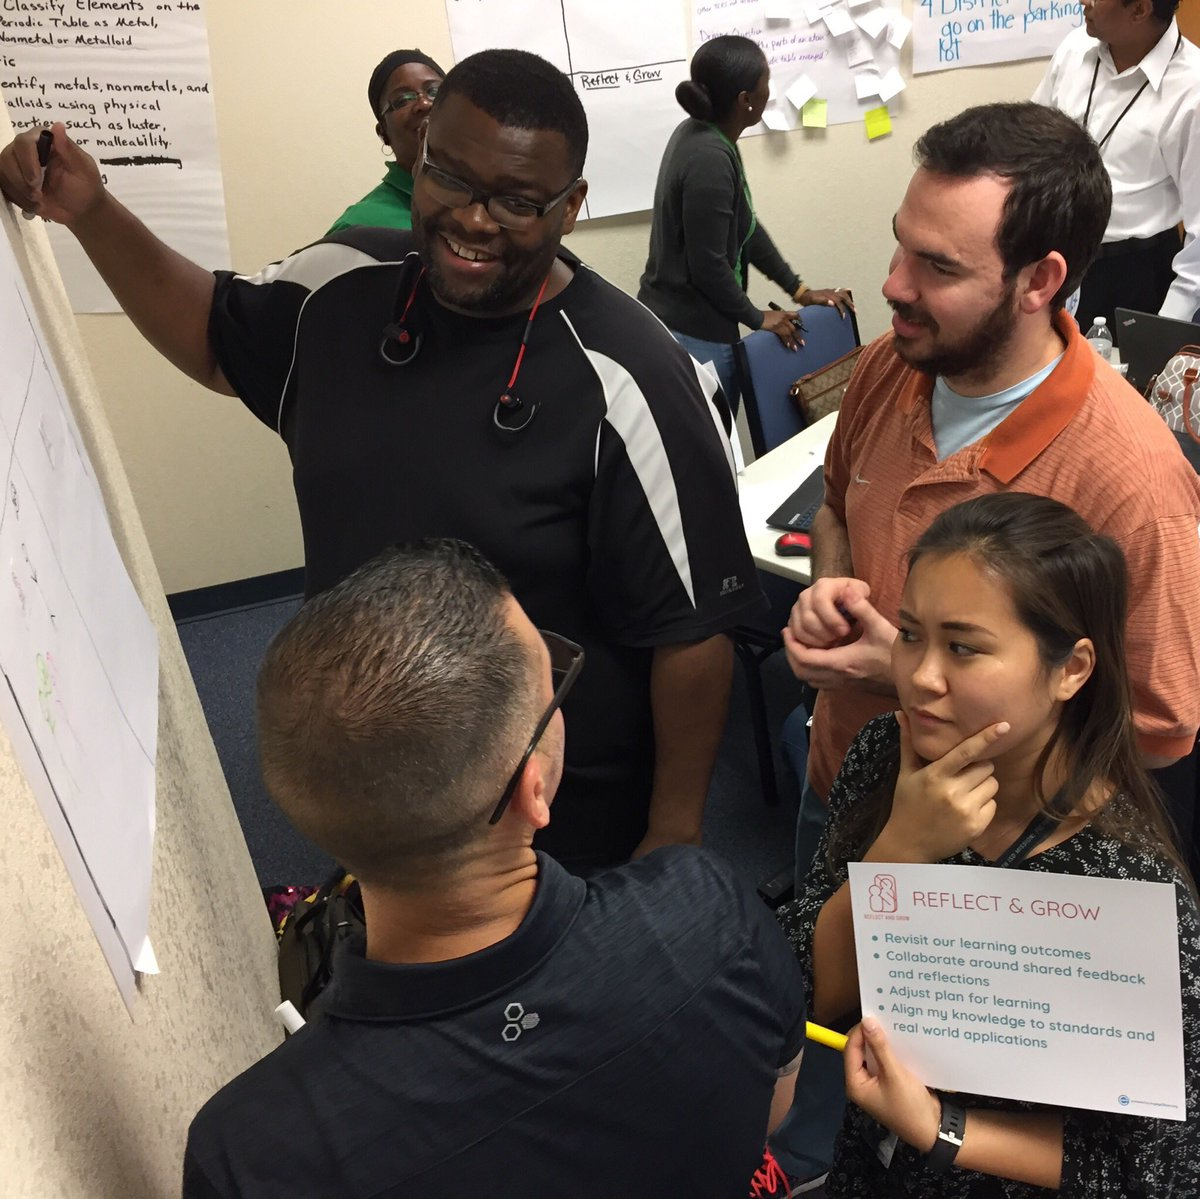 """""""Math Radicals"""" team Reflecting & Growing while getting ready for our #engage2learn #FWISDlearning gallery walk! @engage_learning @FWISDCurriculum #WalkWithPurpose #AddSomeSwagger"""